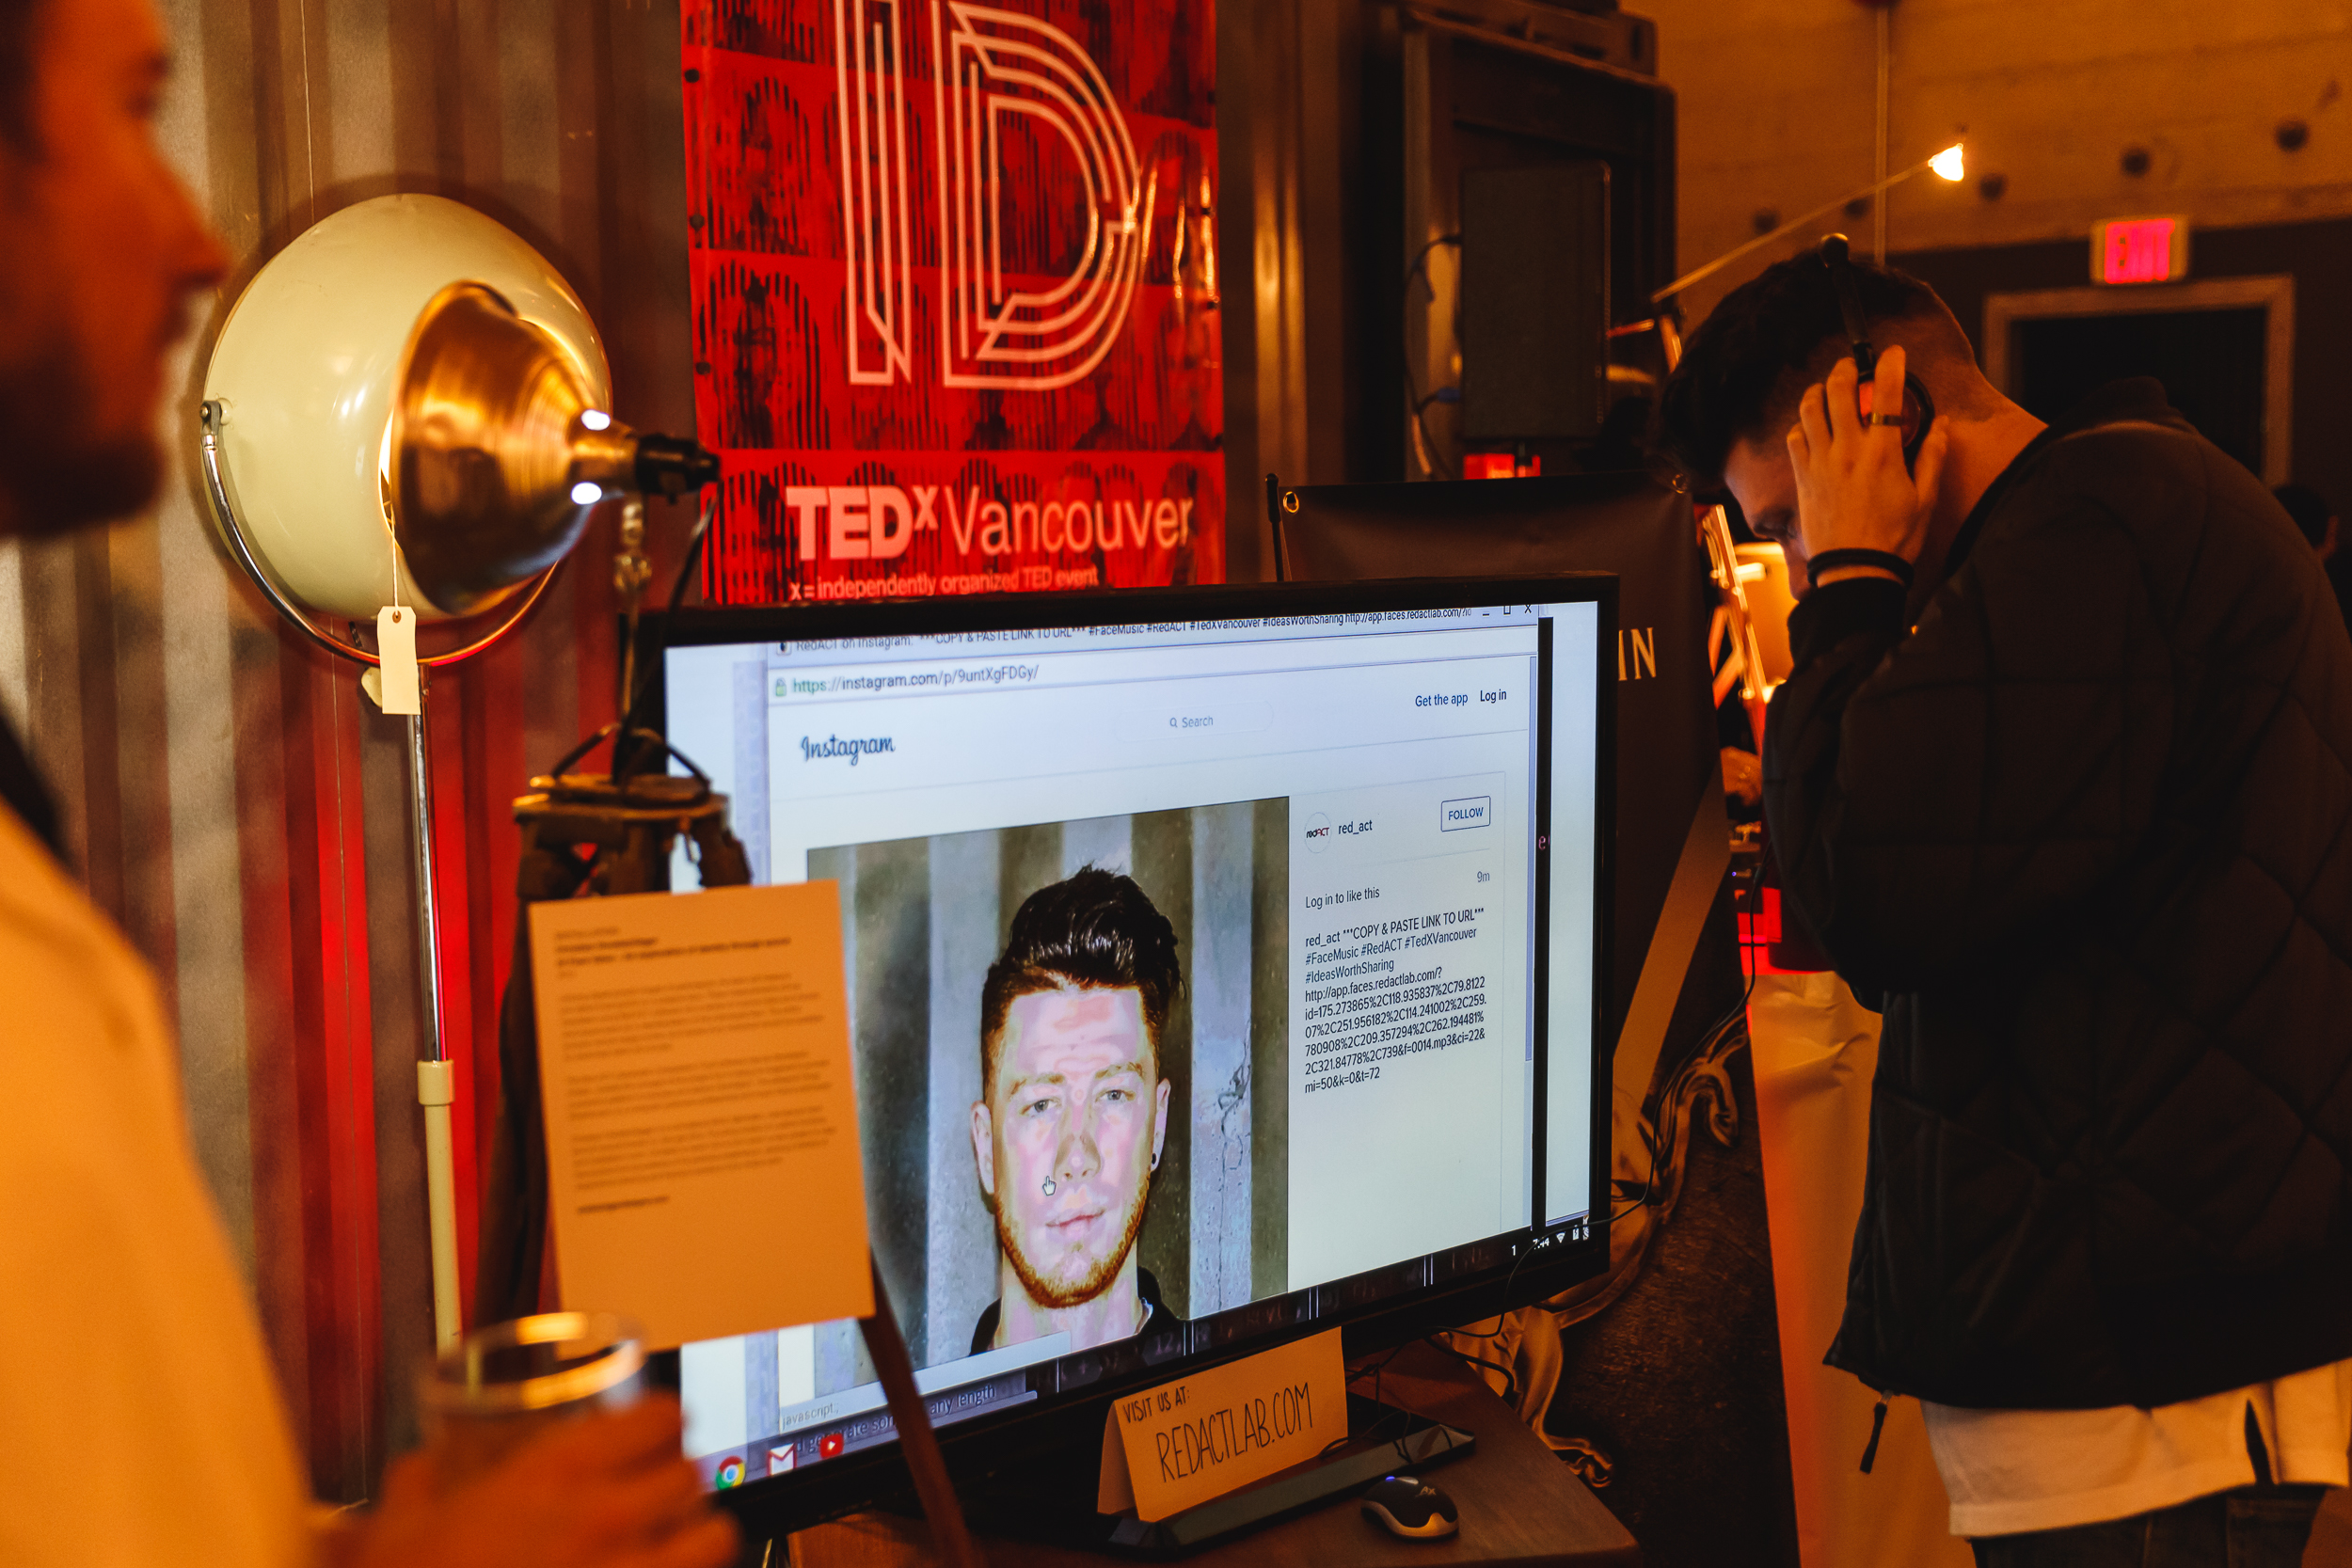 TED-Art-Vancouver-image23.jpg